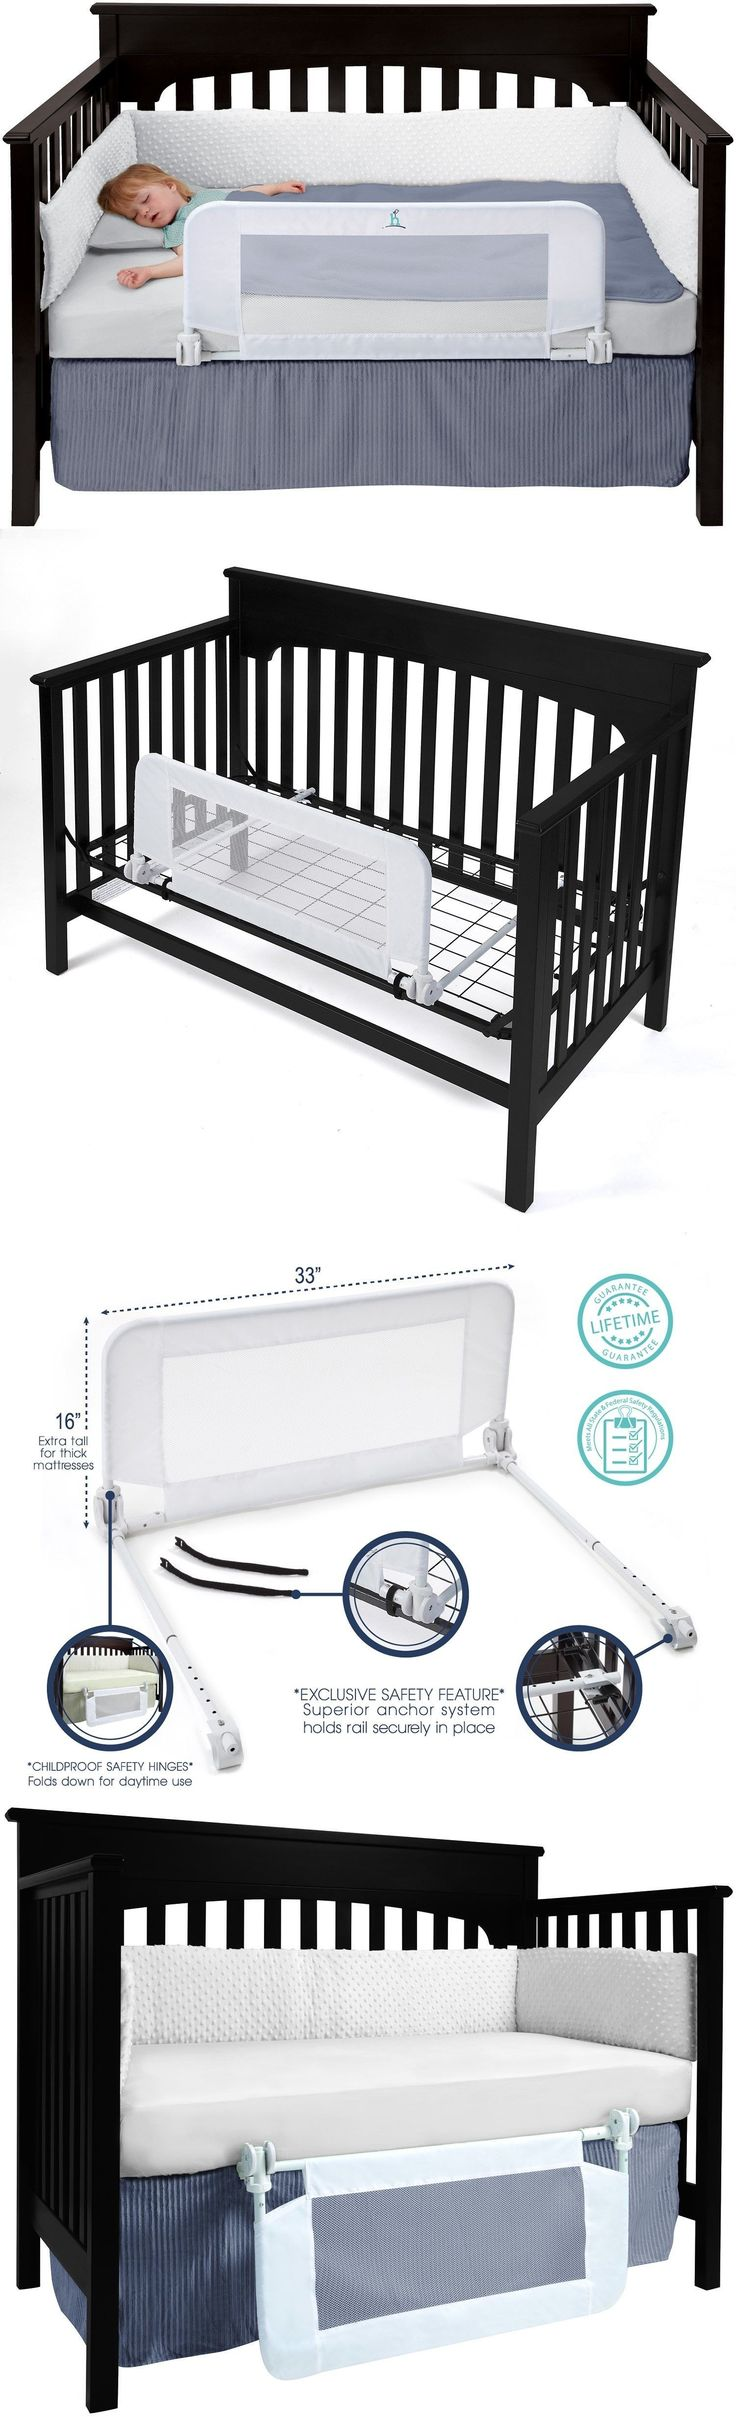 Bed Rails 162183: Hiccapop Convertible Crib Toddler Bed Rail Guard With Reinforced Anchor Safety -> BUY IT NOW ONLY: $44.87 on eBay!